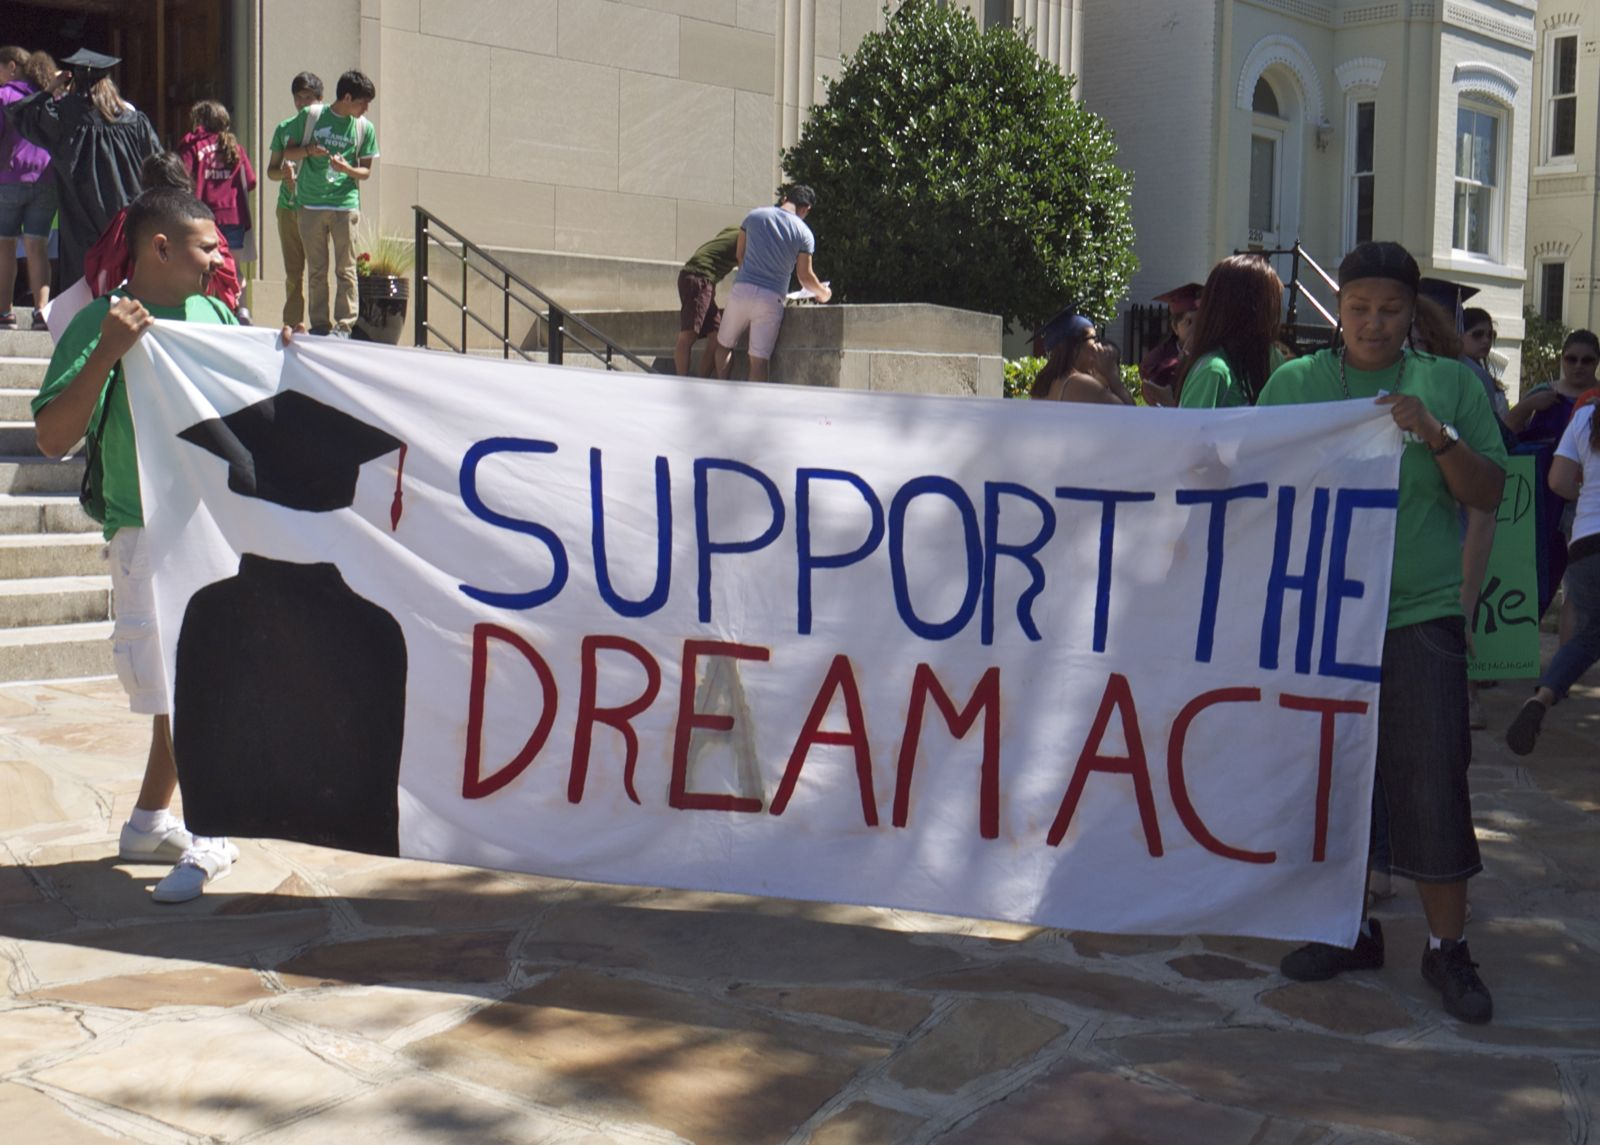 the dream act In january 2007, soon after a thumping in the midterm elections, president george w bush met with the new congressional leadership to talk about the agenda for his final two years in office and his hopes for a breakthrough on immigration.